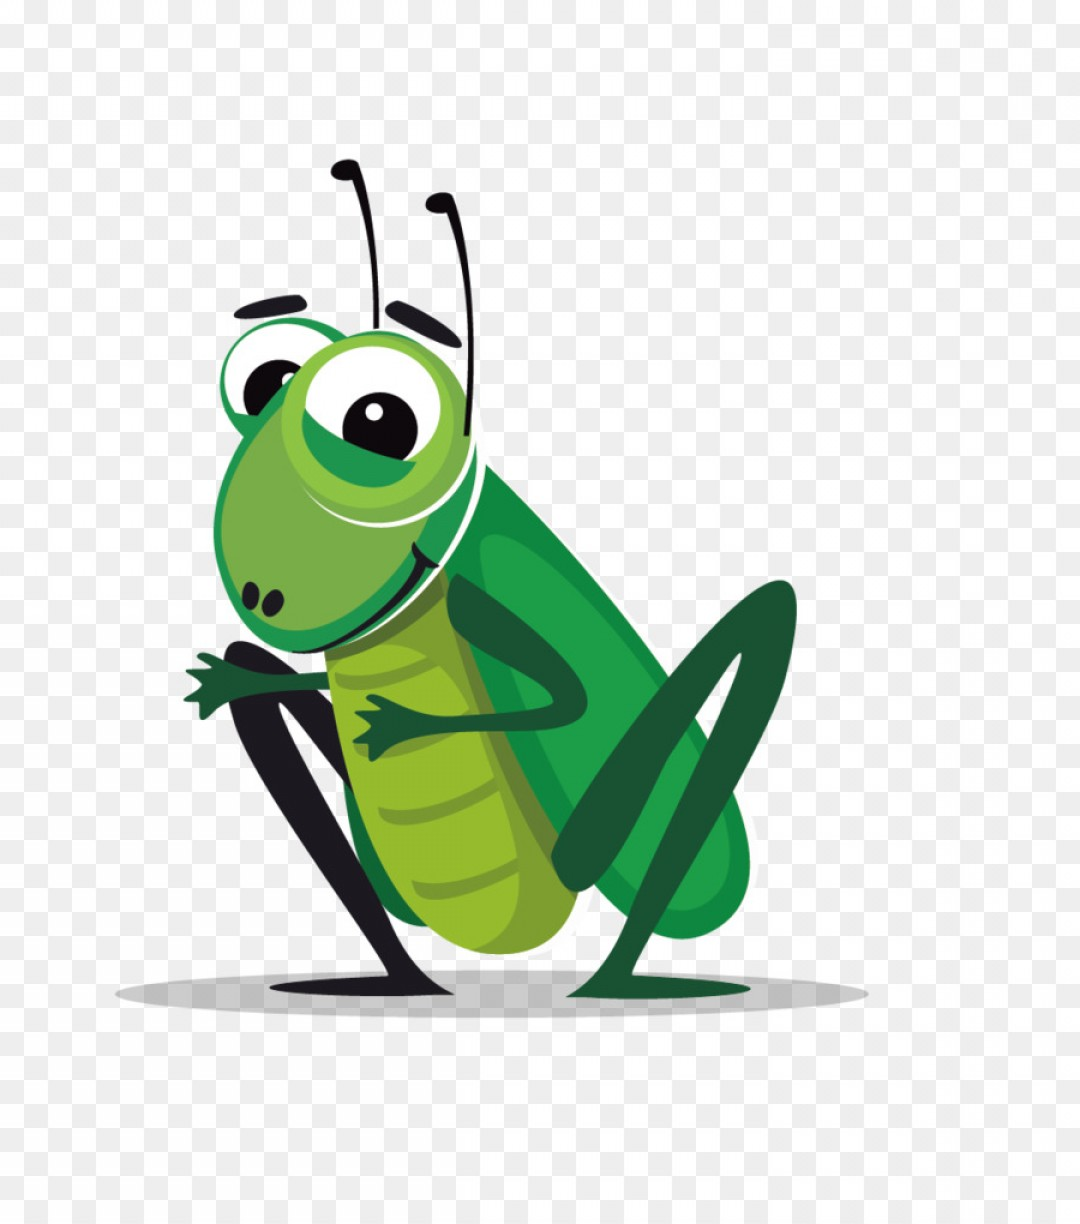 Png Insect Cricket Cartoon Clip Art Vector Material Gr.